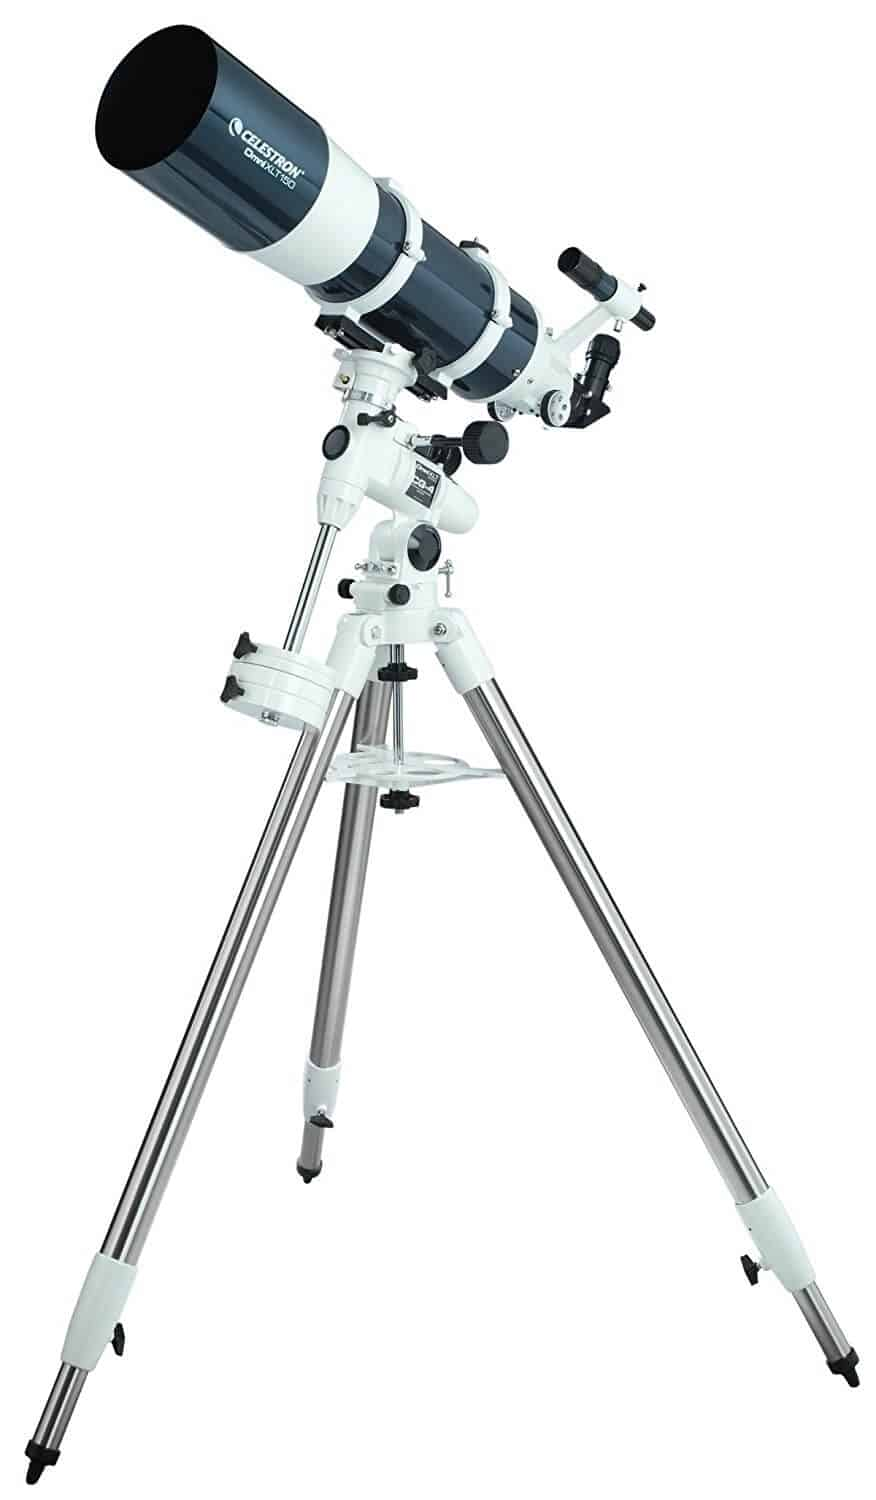 Merveilleux Best Refractor Telescope Between $500 And $1000 Celestron Omni Xlt 150